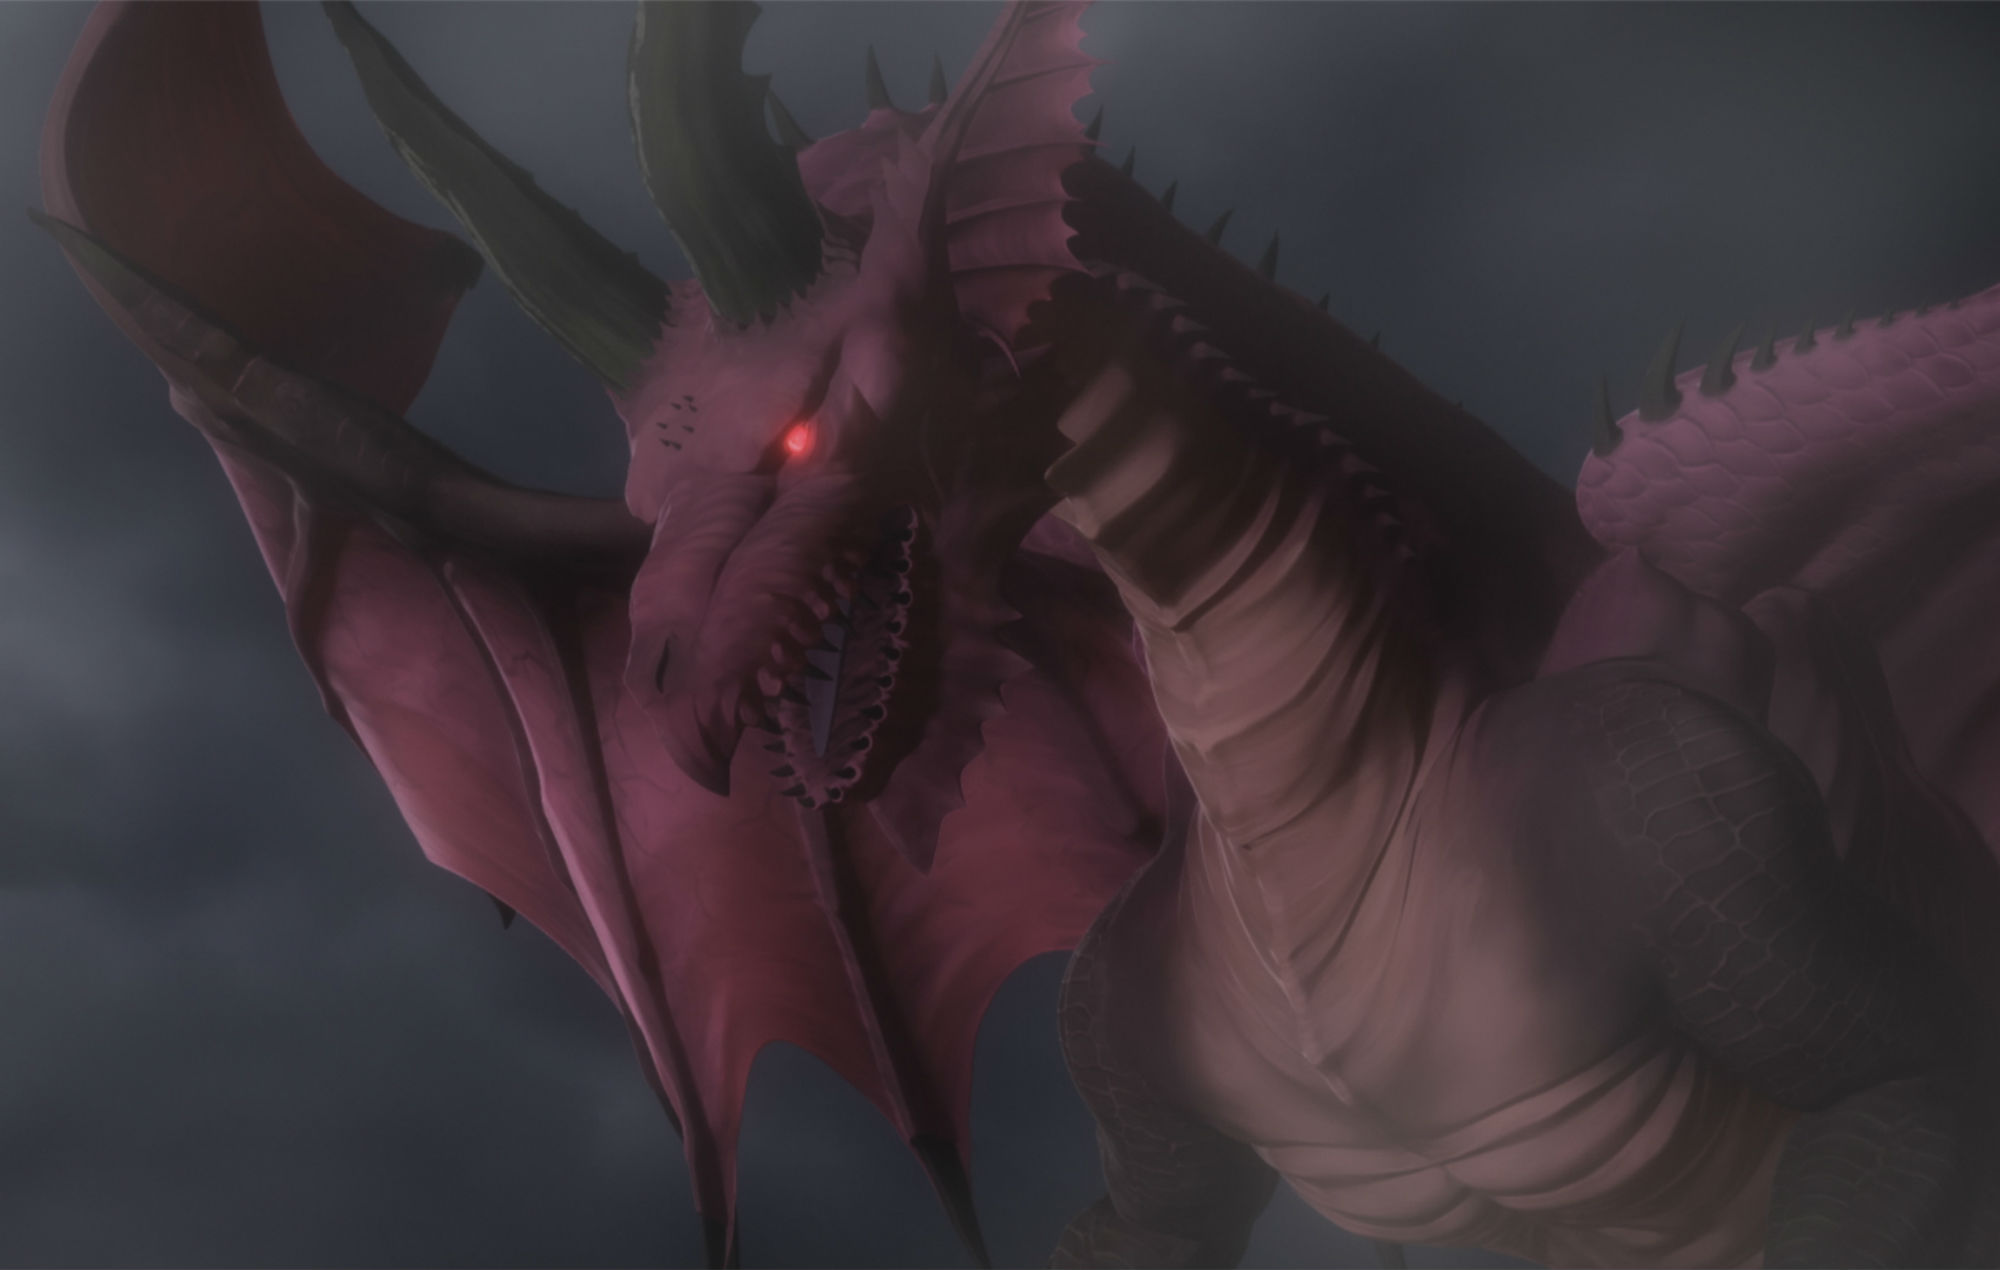 Netflix's 'Dragon's Dogma' anime series is coming later this year